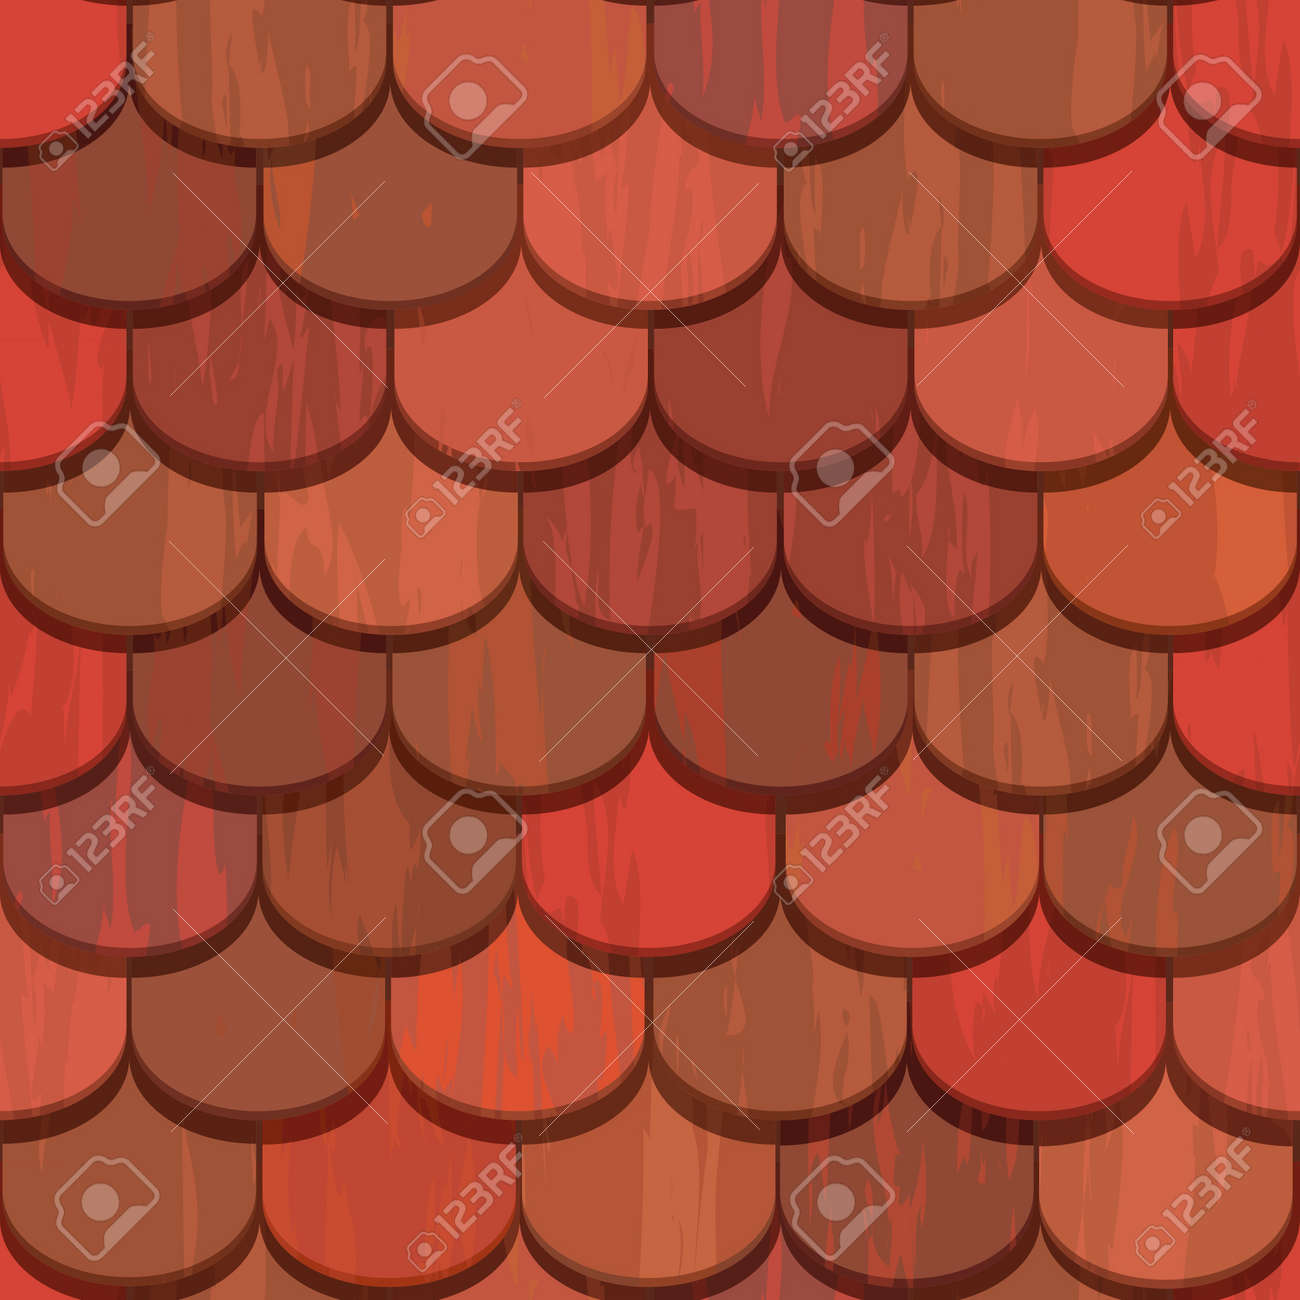 Red clay ceramic roof tiles seamless texture royalty free cliparts red clay ceramic roof tiles seamless texture stock vector 13551603 dailygadgetfo Image collections